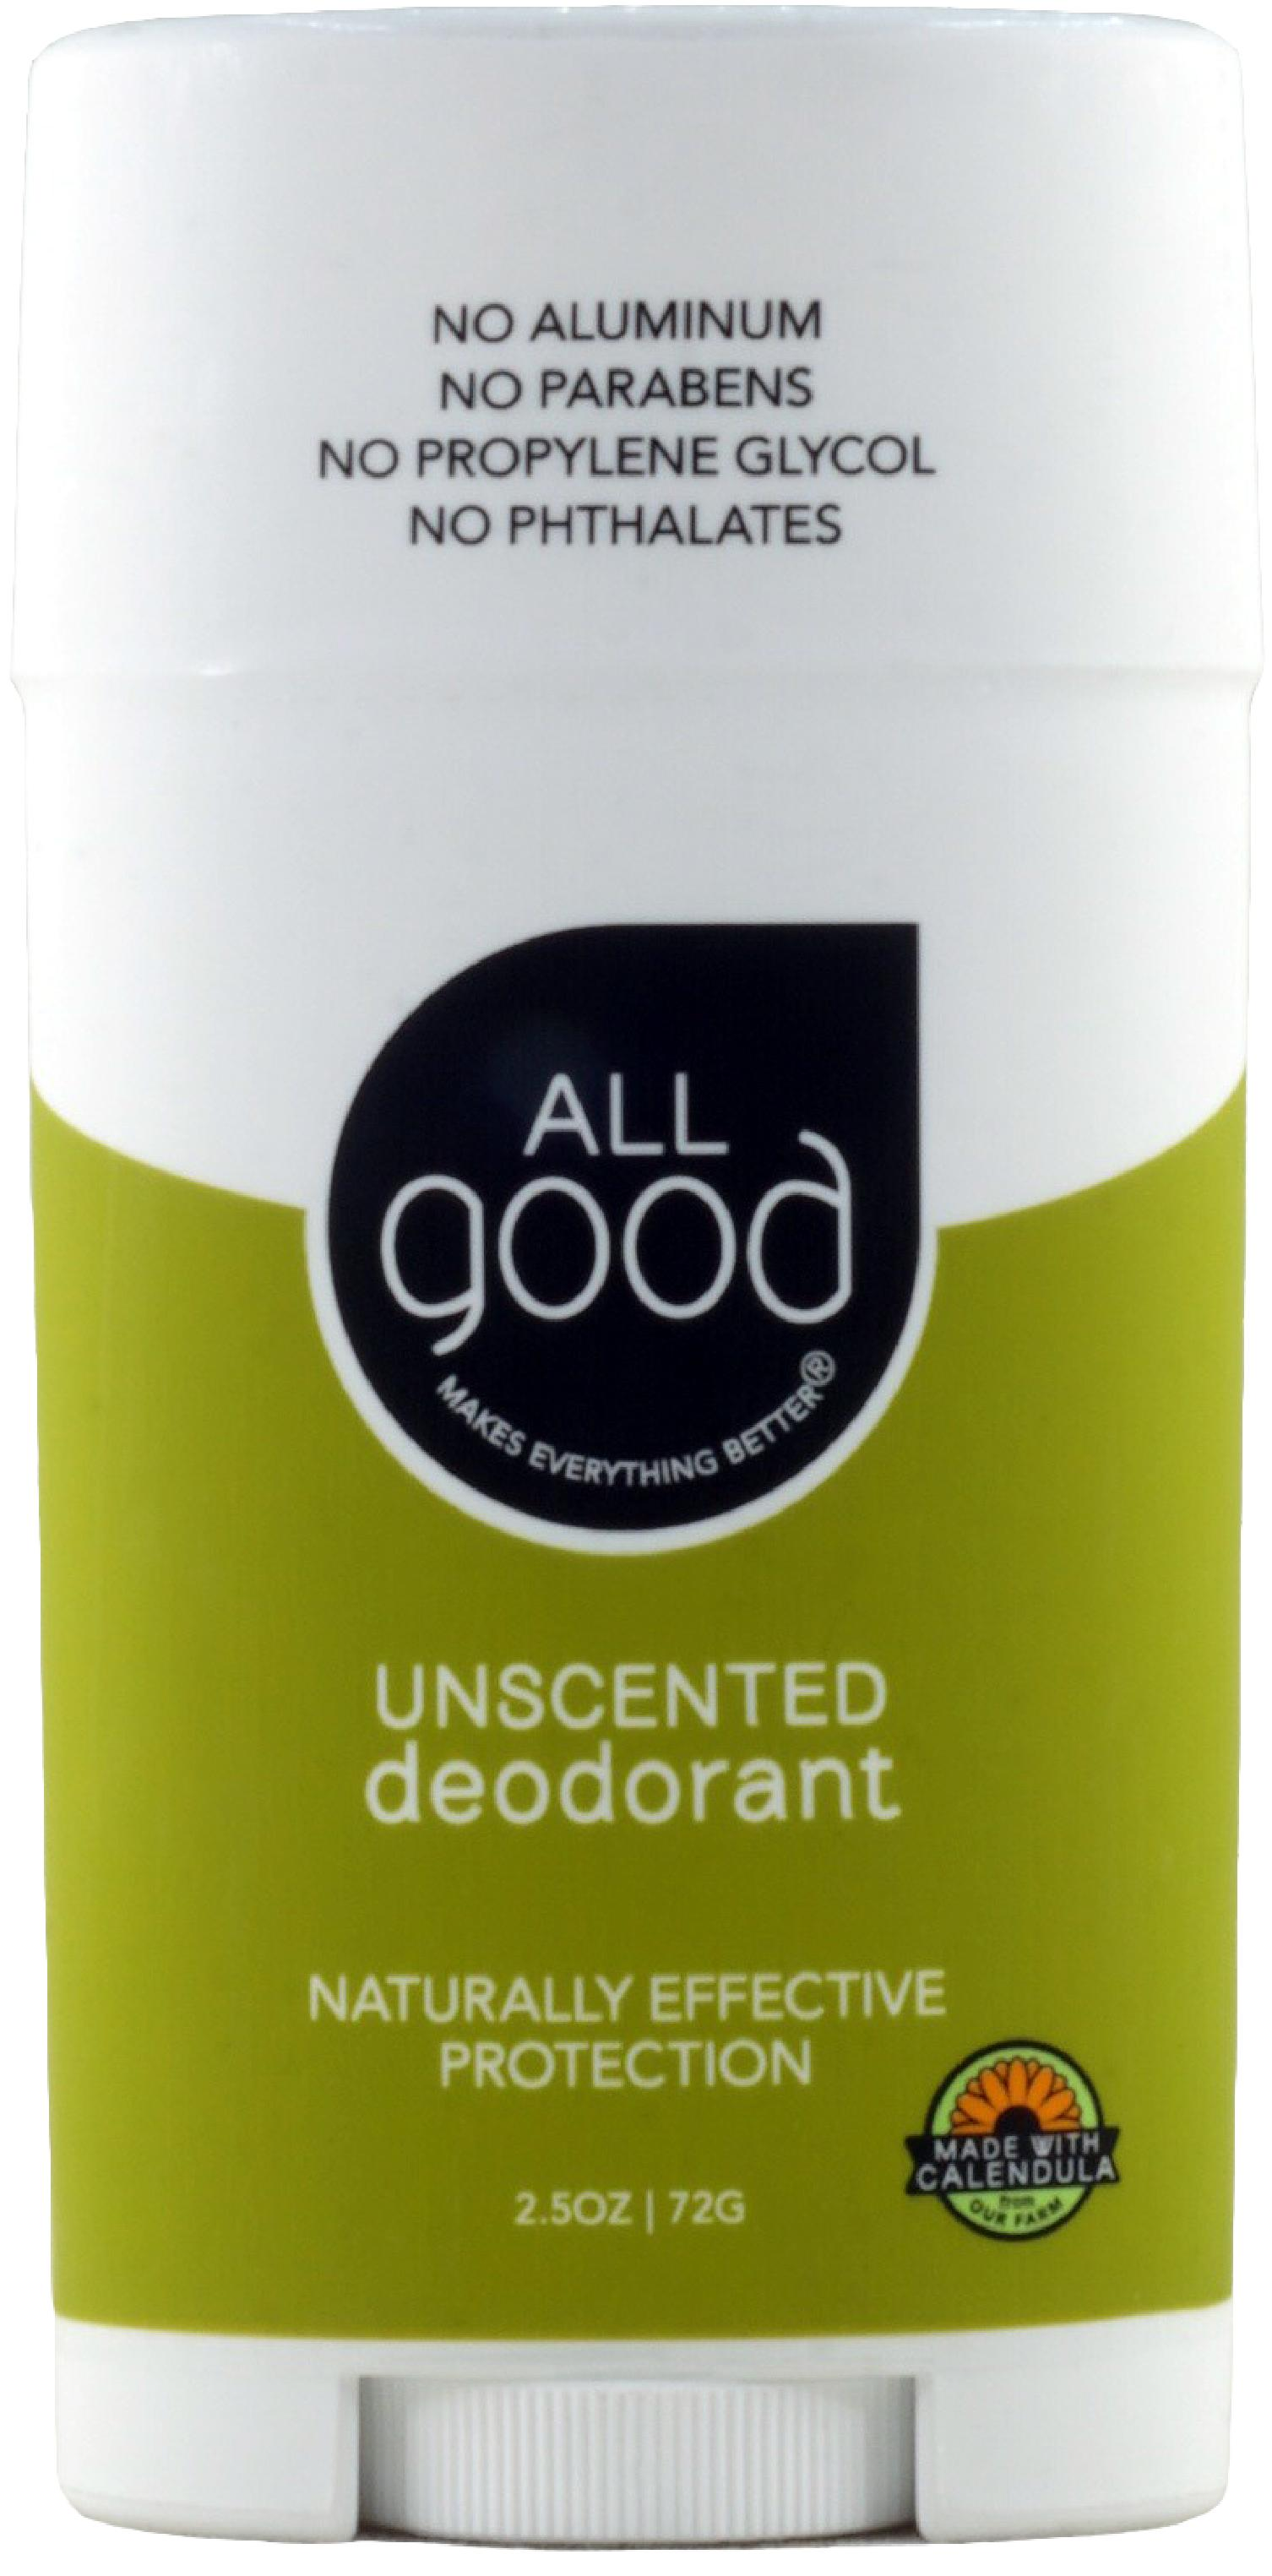 All Good Unscented Deodorant